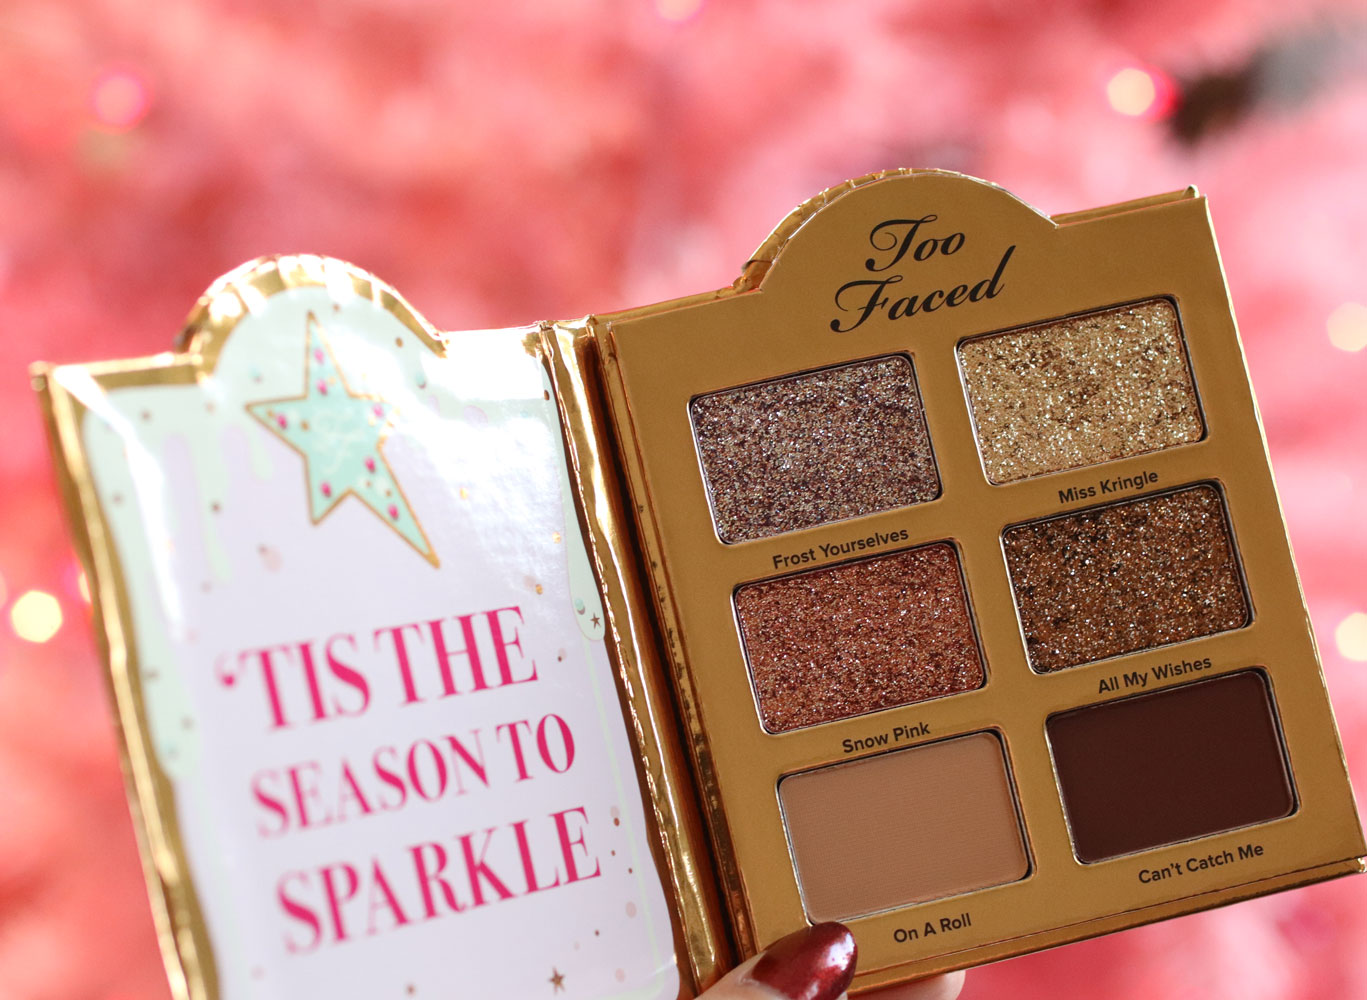 Too Faced Christmas Cookie House Party glitter eyeshadow palette